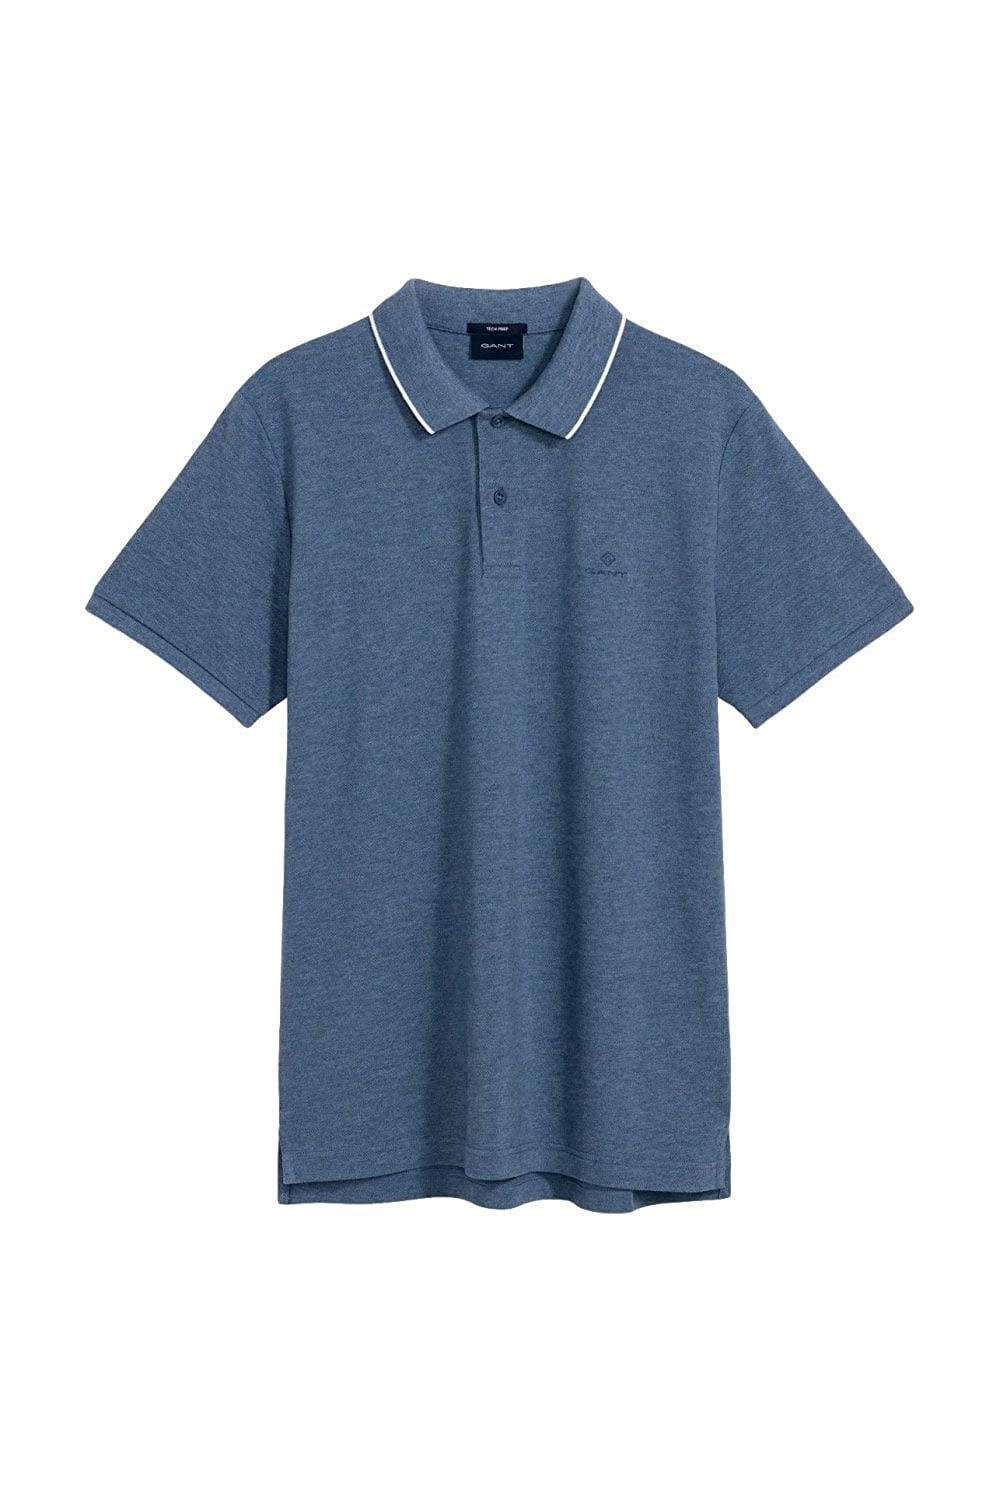 Gant Hombres Pique Tech Prep Rugger Polo Polo Azul XL: Amazon.es ...